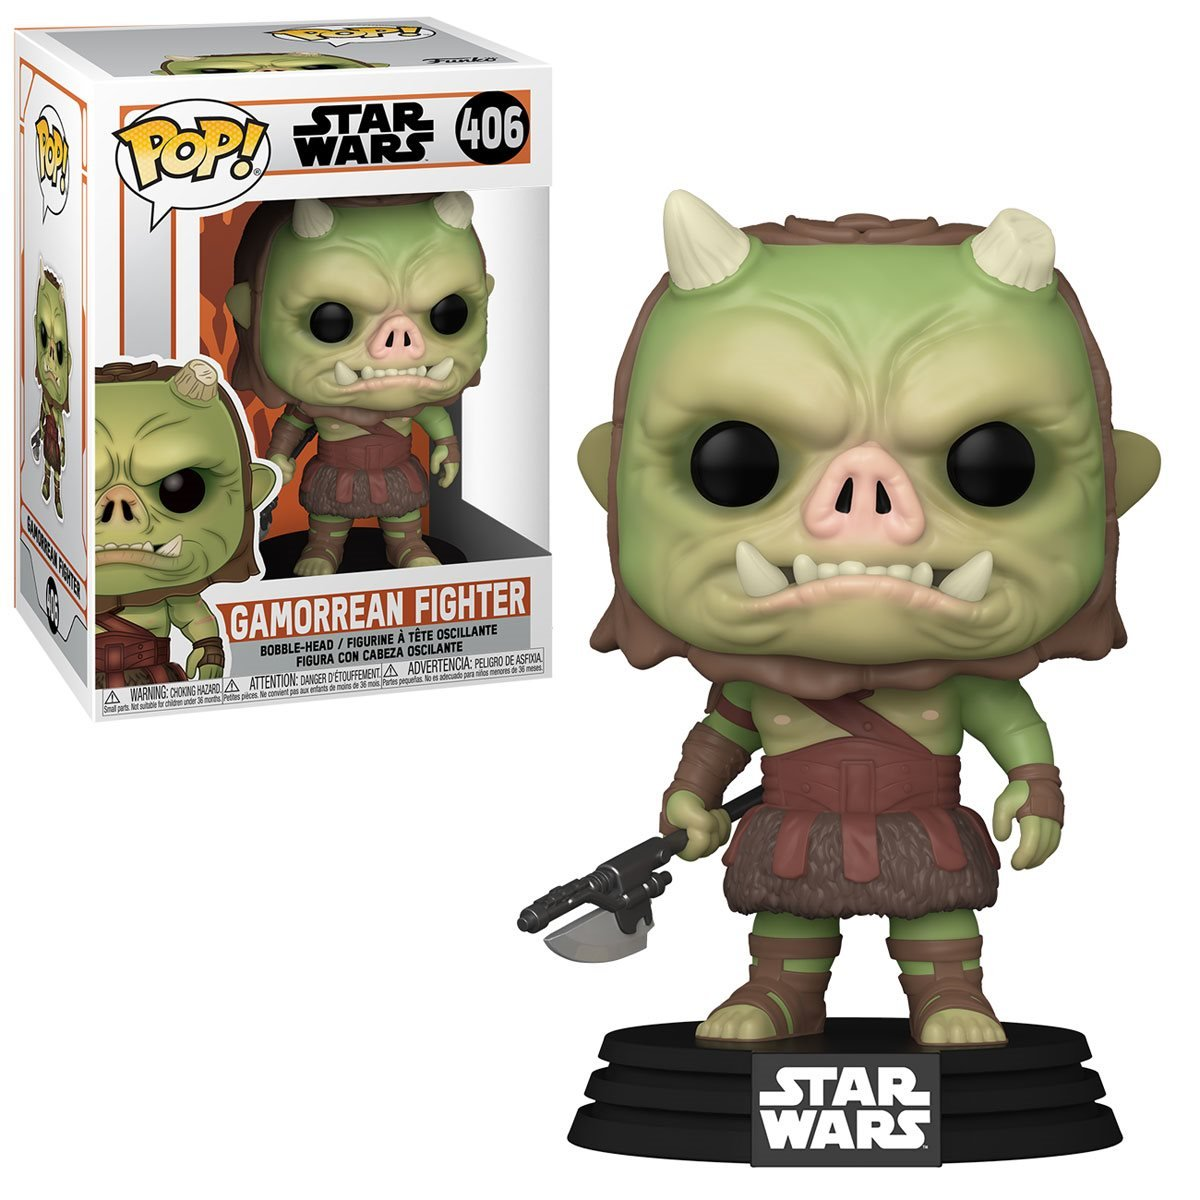 POP! Star Wars 406: Mandalorian - Gamorrean Fighter